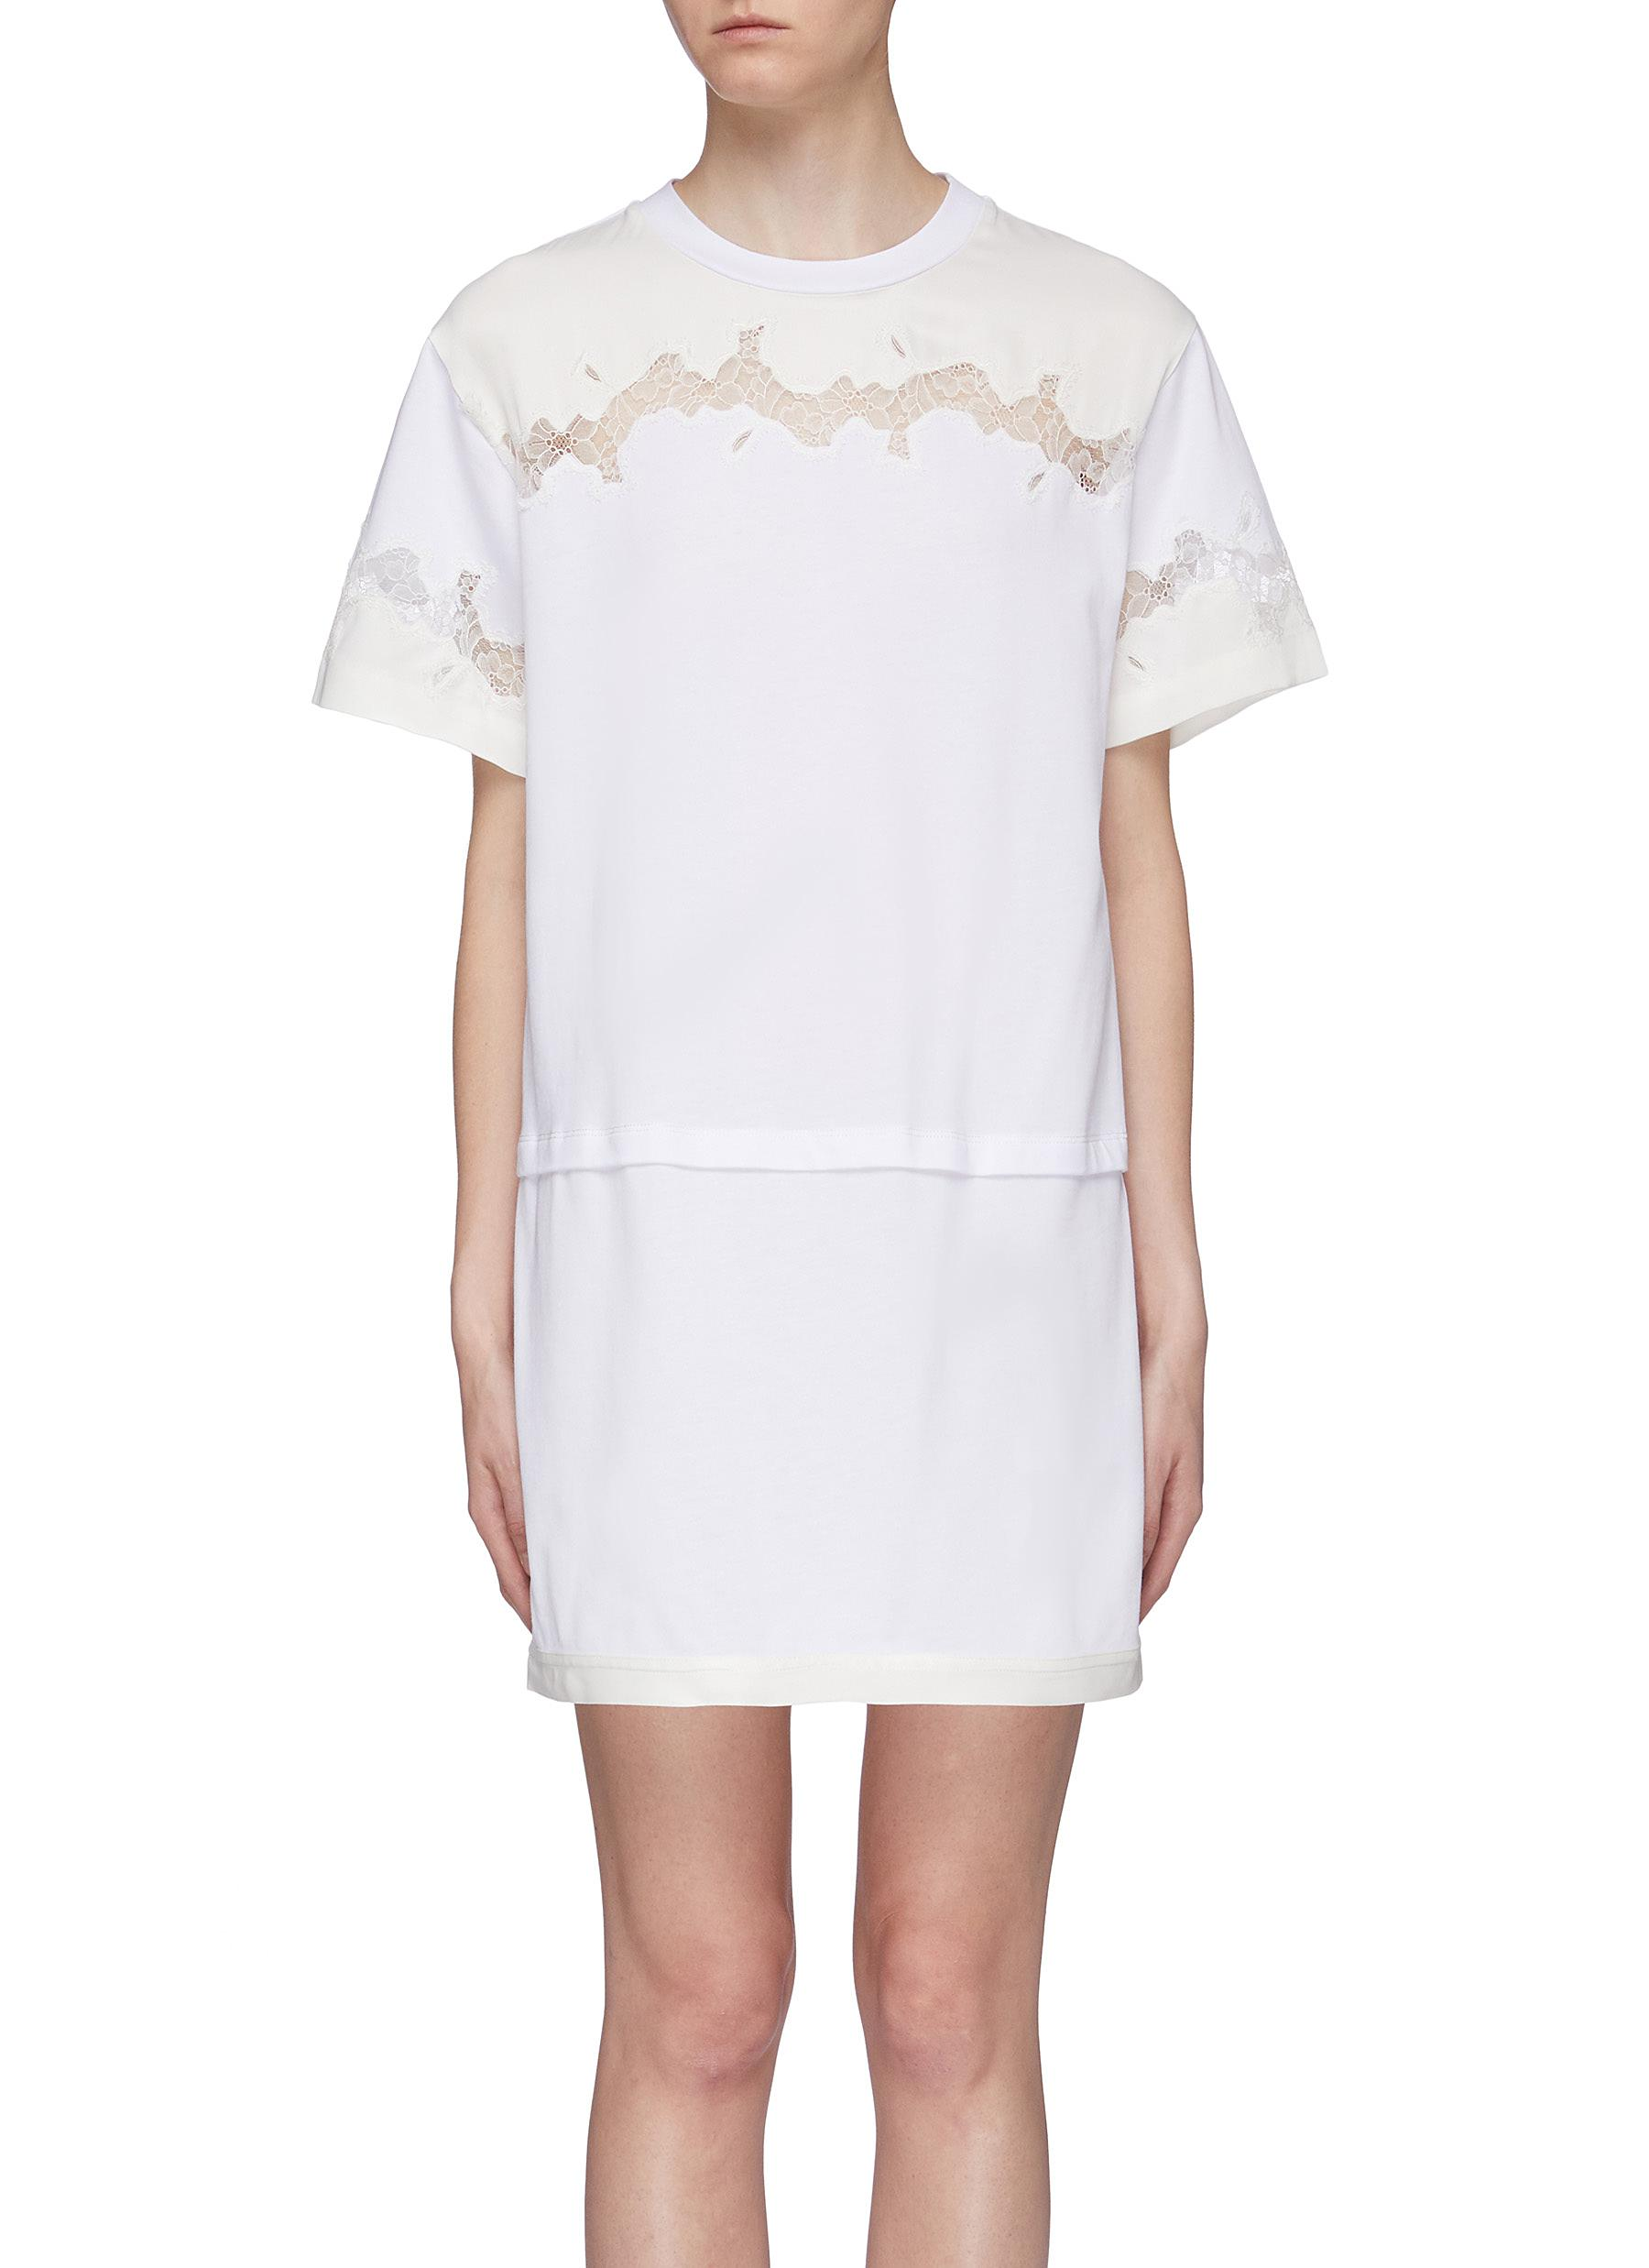 Chantilly lace insert panelled T-shirt dress by 3.1 Phillip Lim